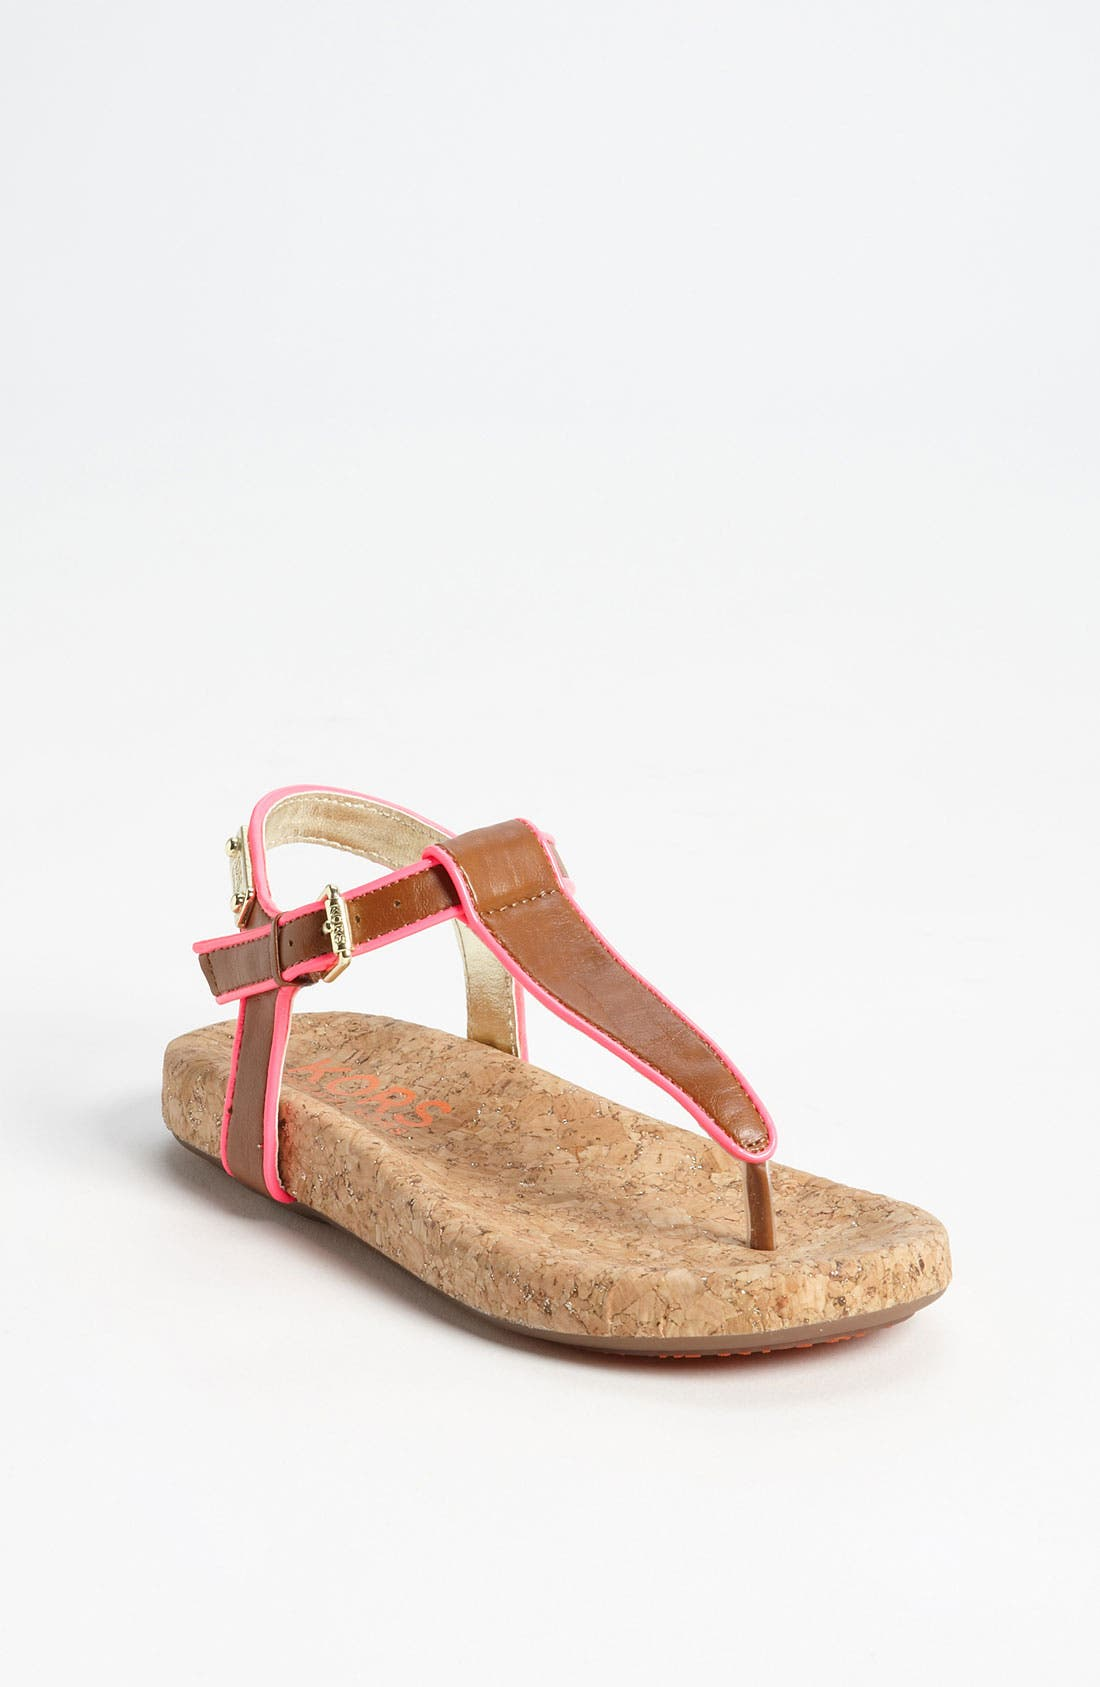 Main Image - KORS Michael Kors 'Moonlight' Sandal (Toddler, Little Kid & Big Kid)